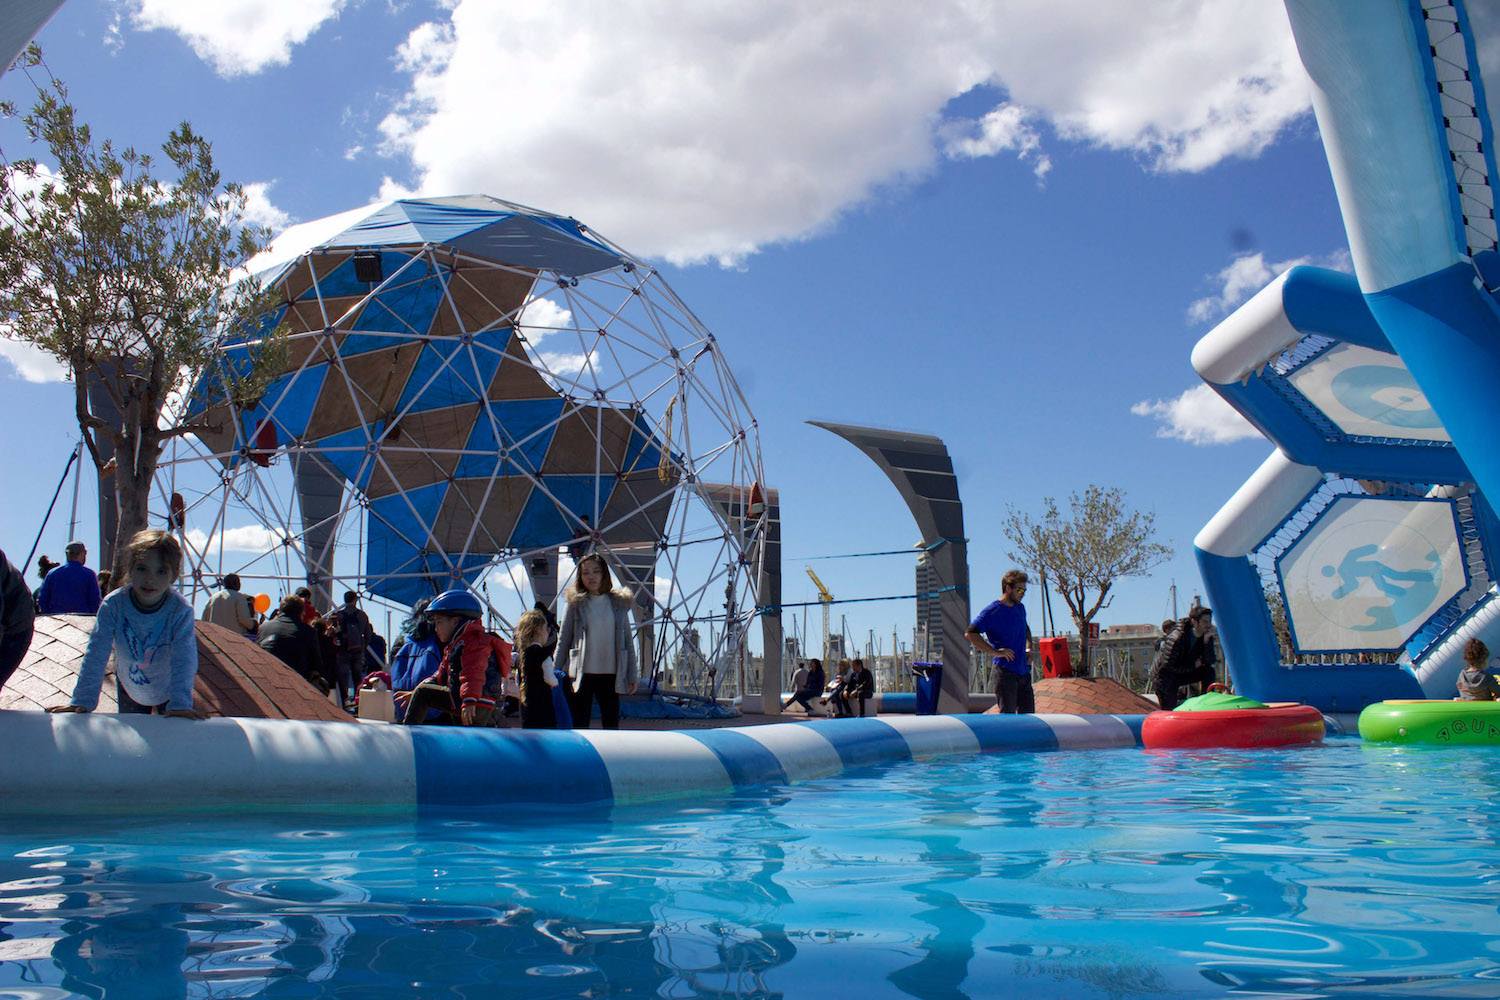 Where hiflying kids play   Bubbleparc is a micro entertainment park that jumps outside the box every summer in the Edinburgh, Falkirk and Barcelona, providing a perfect opportunity for visiting children to let off steam.